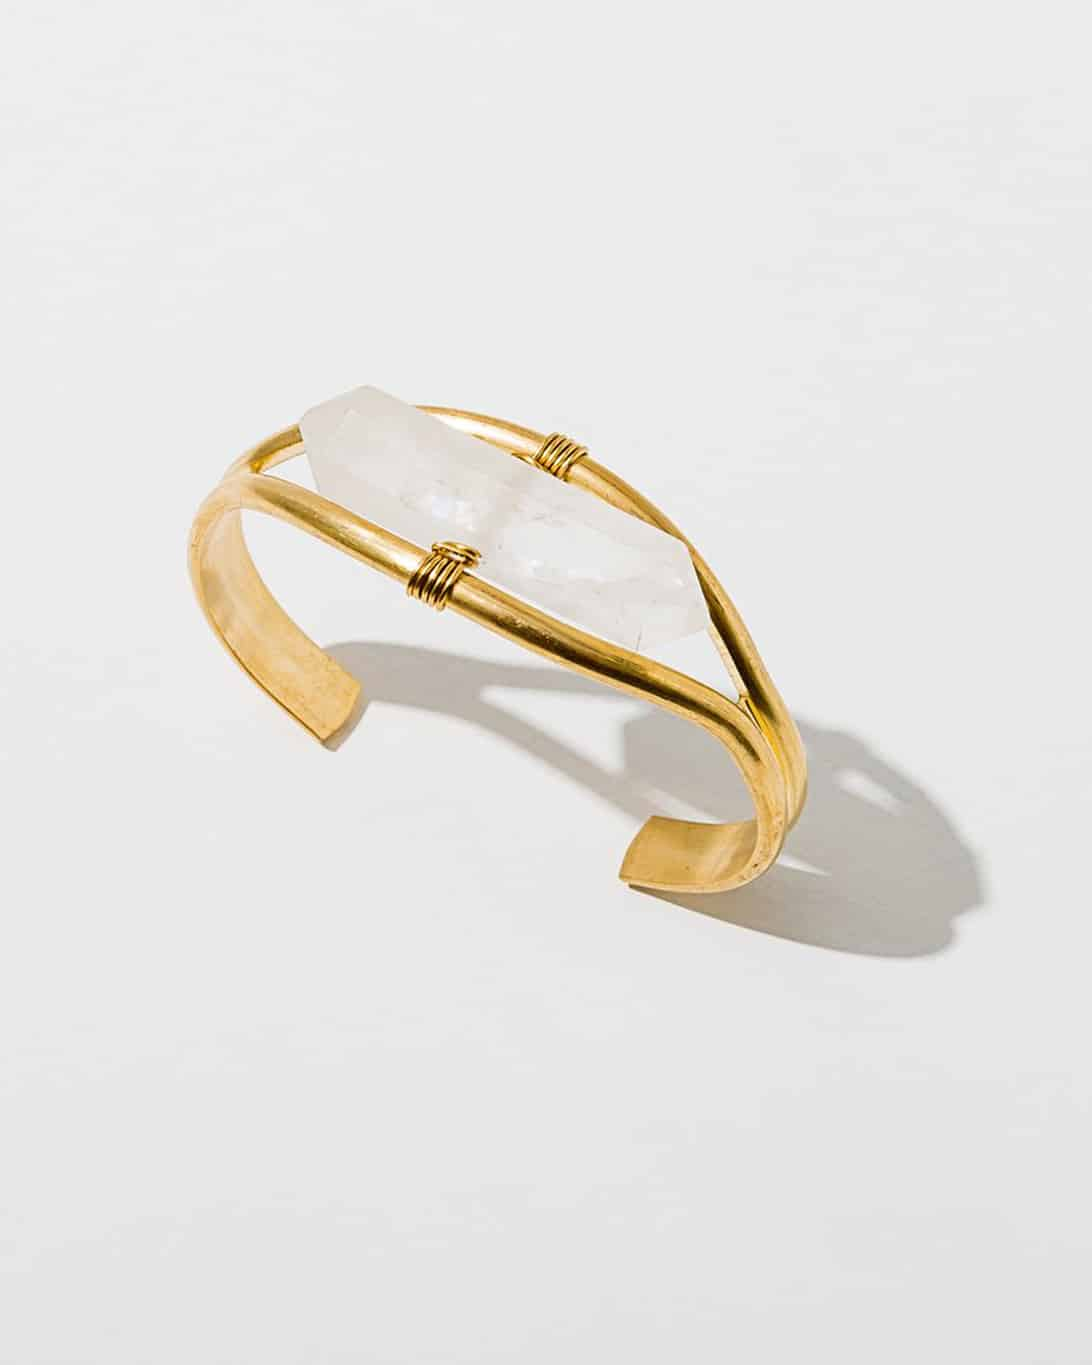 A brass banded cuff bracelet with a quartz gemstone in the center